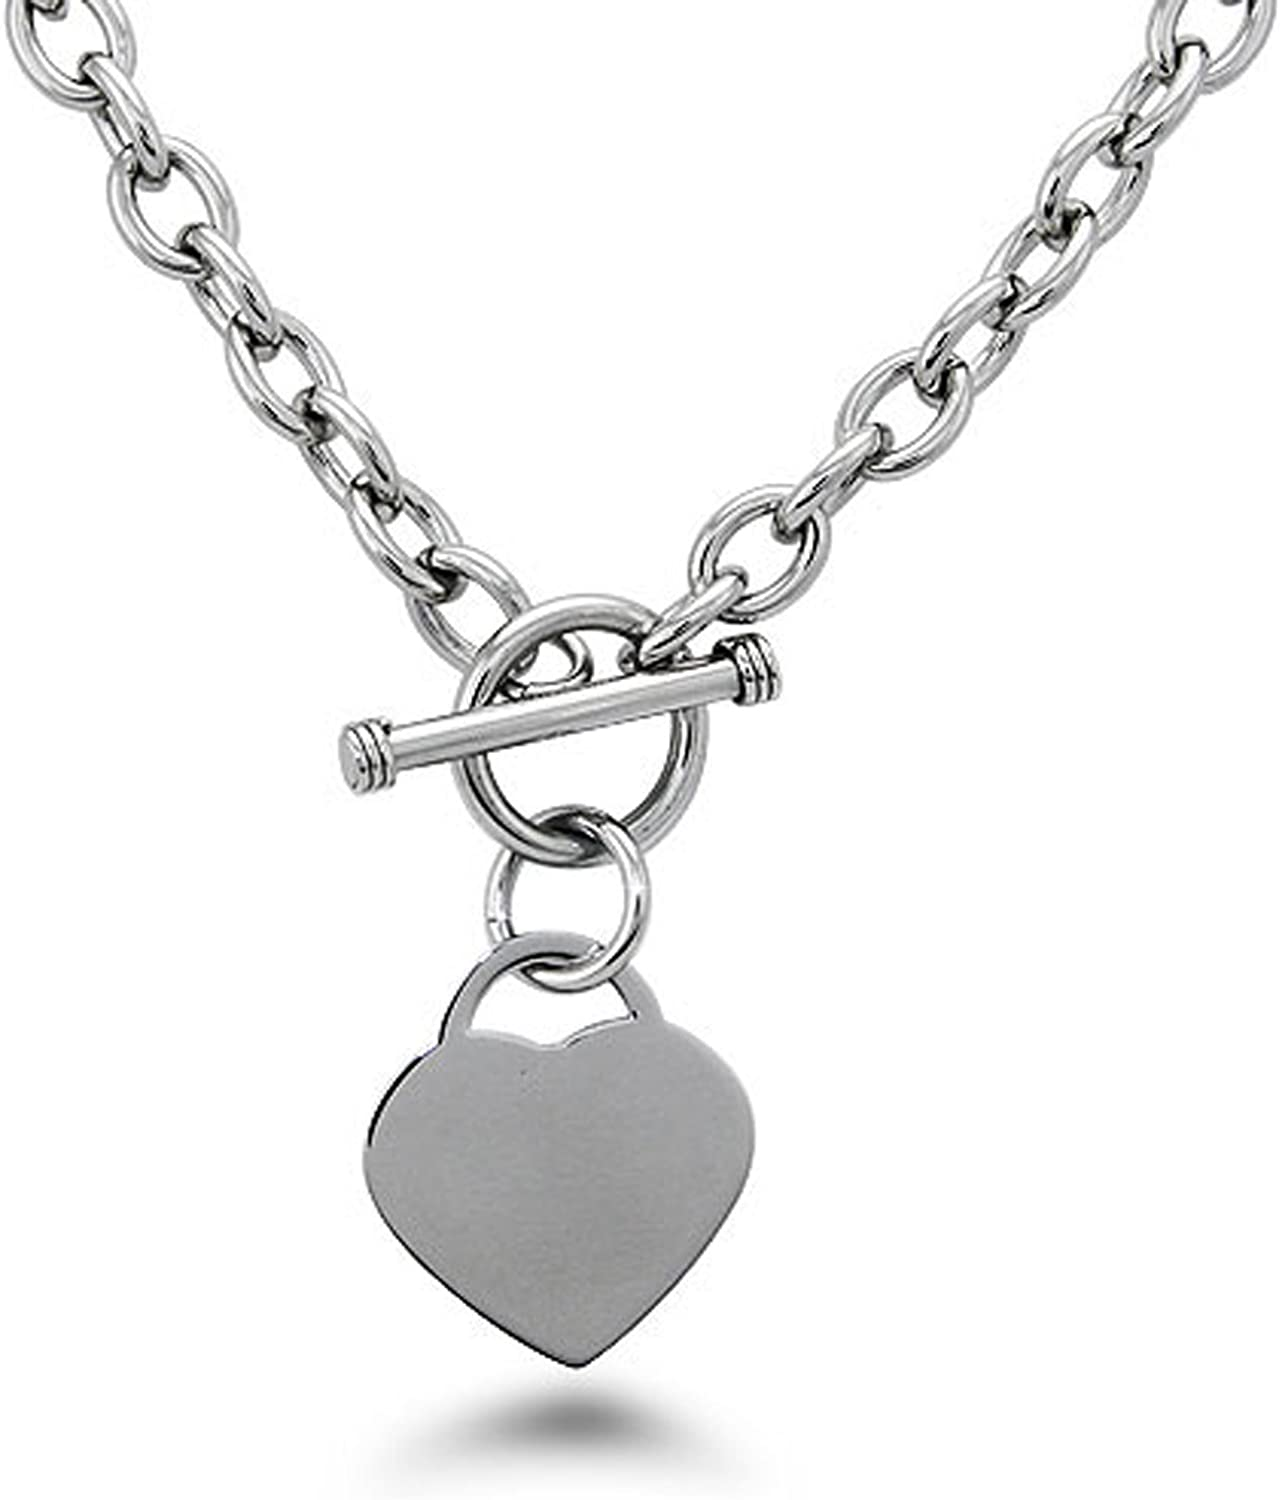 Tioneer Stainless Steel Heart Tag Charm Chain Necklace w/Personalized Engraving w/Personalized Engraving